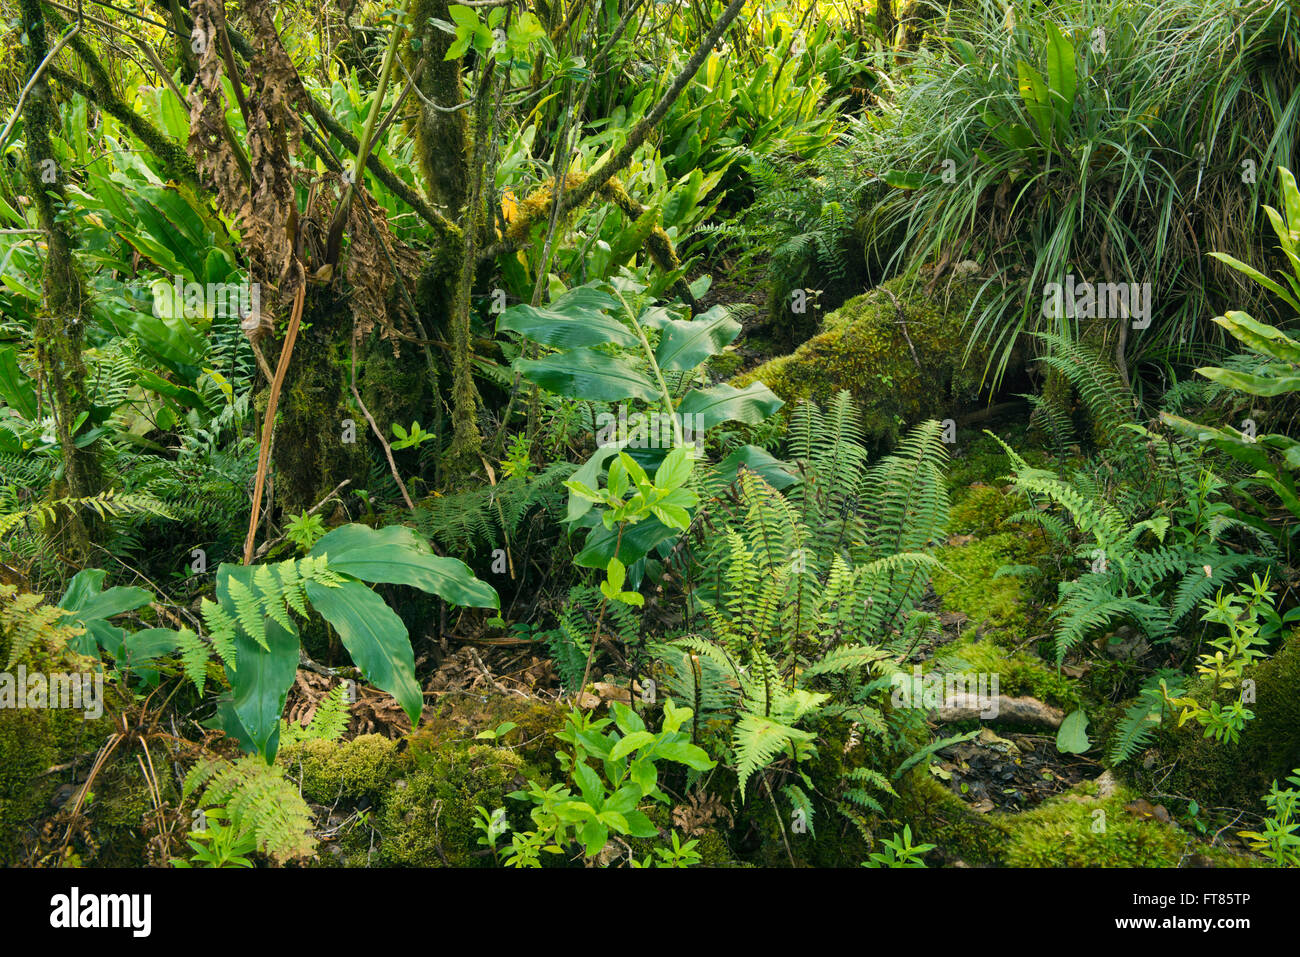 Mossy montane forest of Alaka'i Swamp, home to some of last endemic Hawaiian birds, Kauai, Hawaii - Stock Image